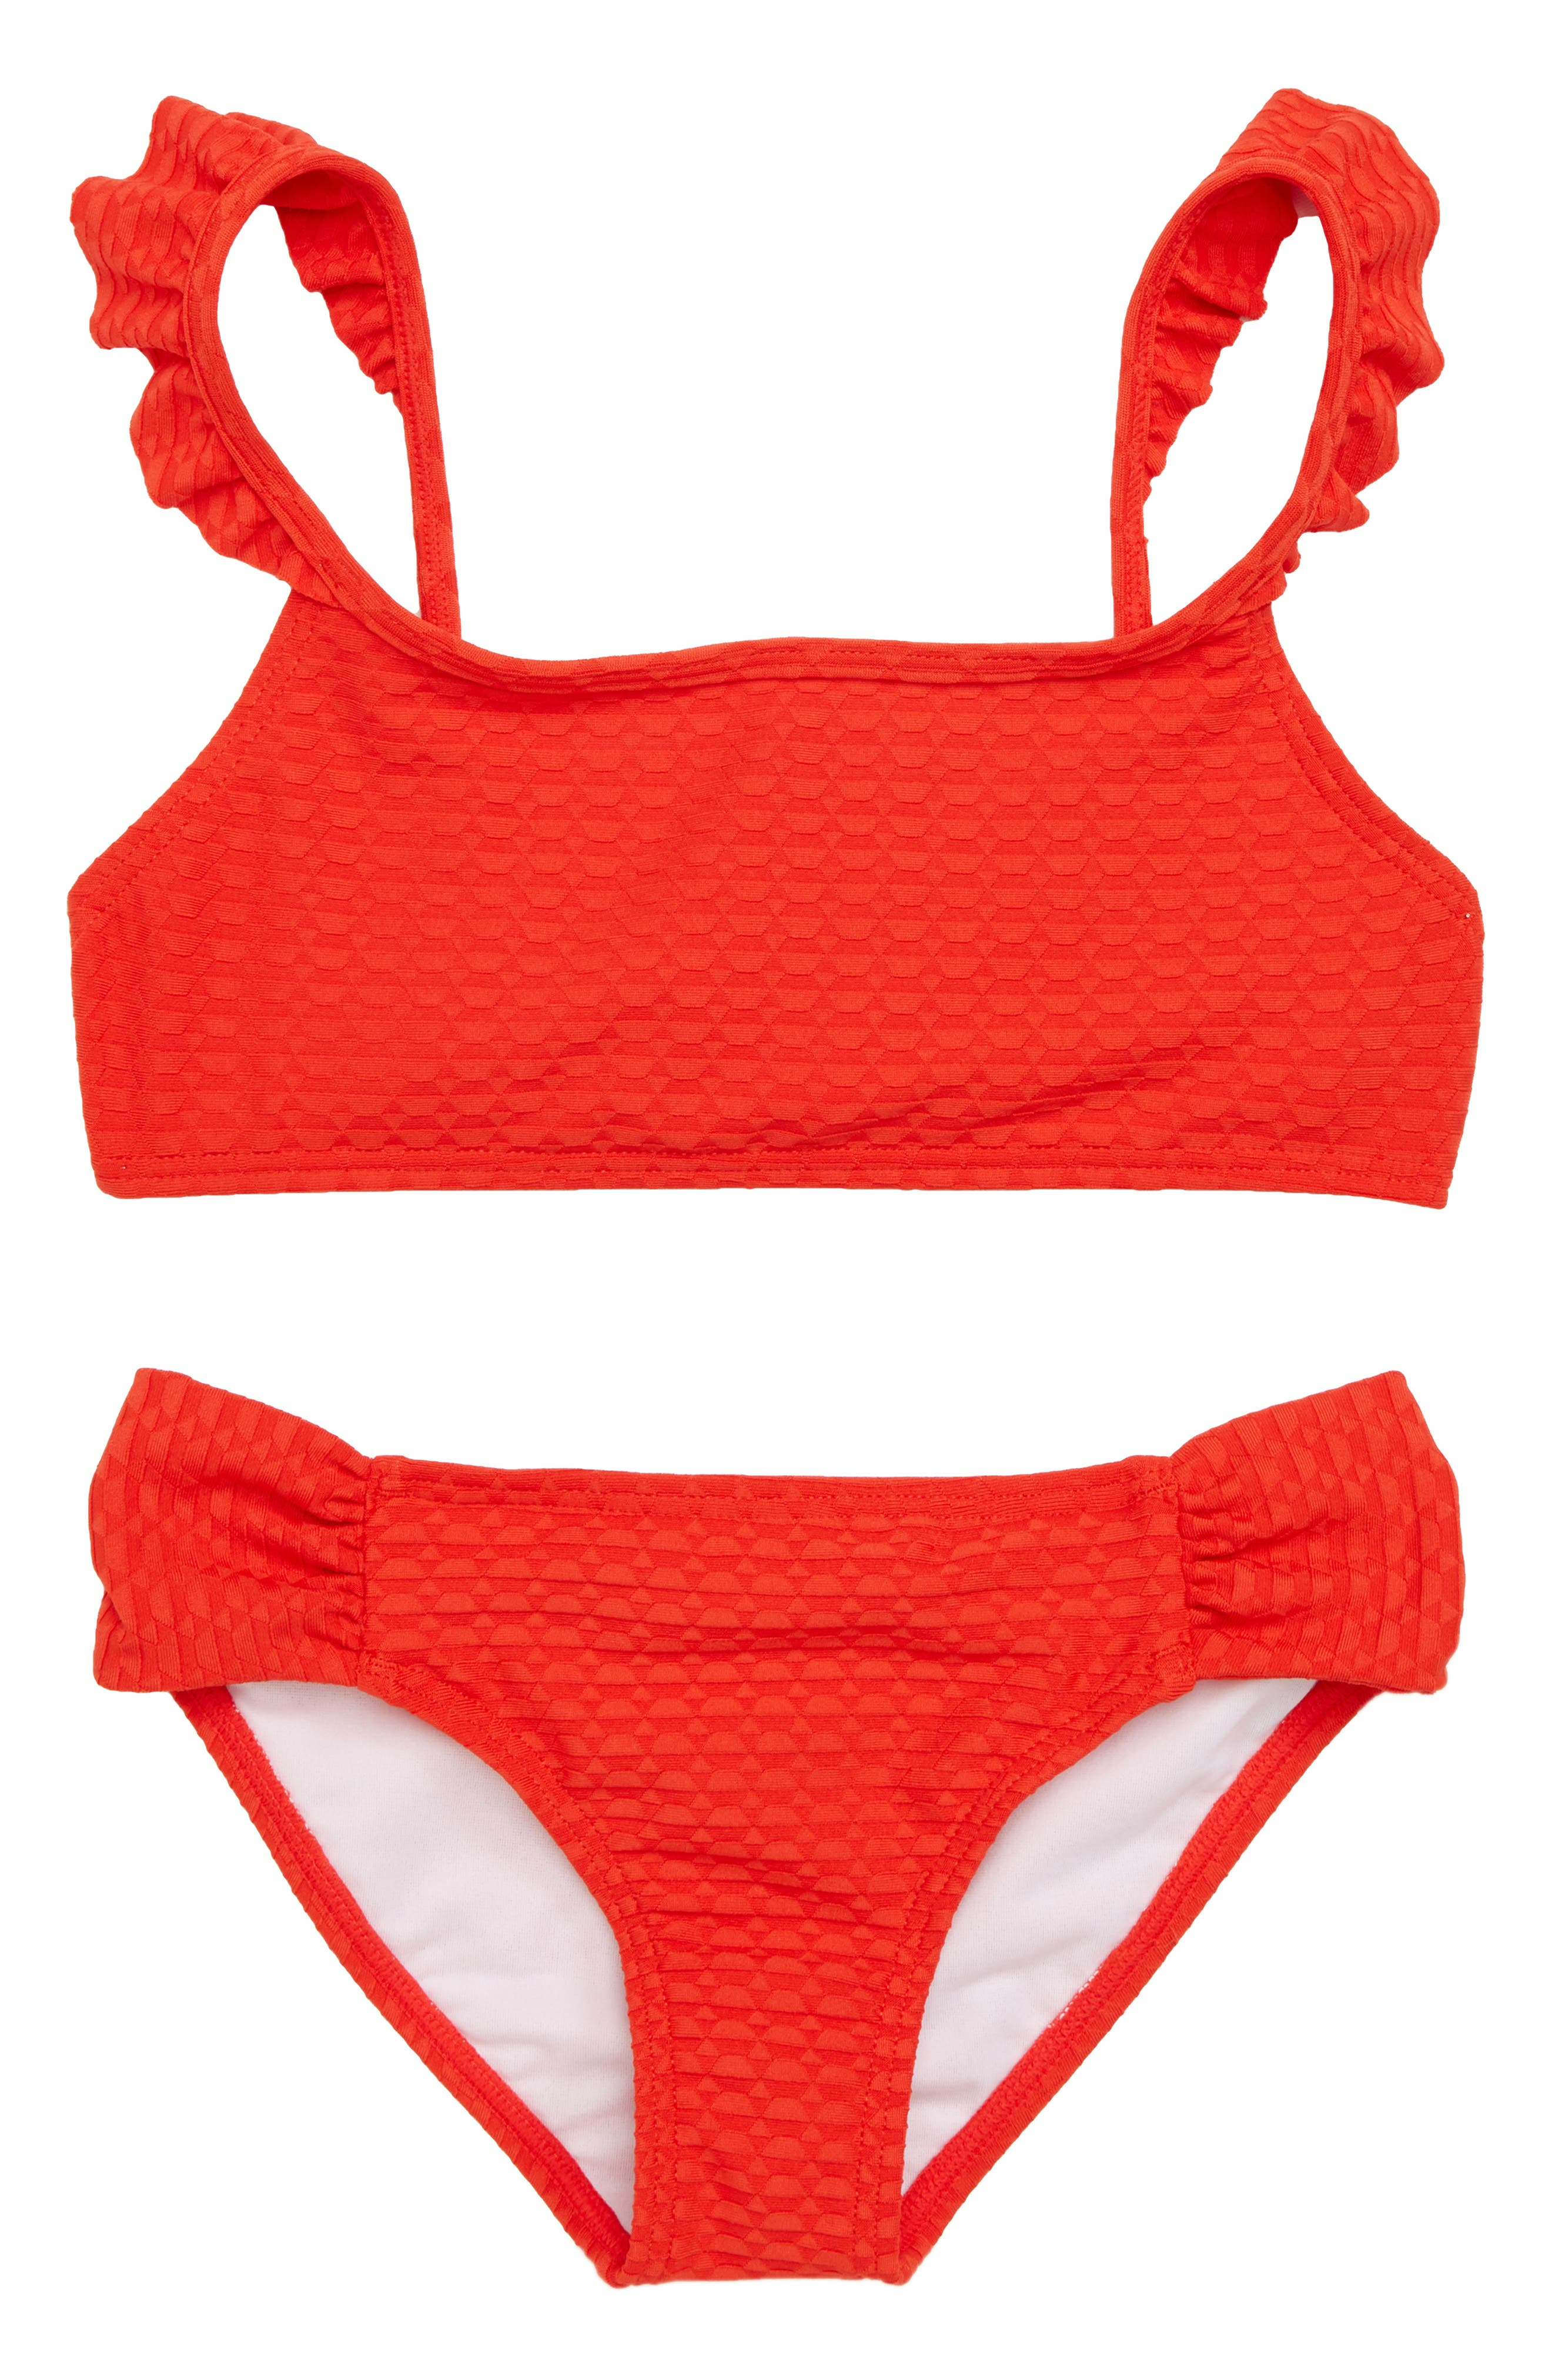 Makin Shapes Two-Piece Swimsuit,                             Main thumbnail 1, color,                             Poppy